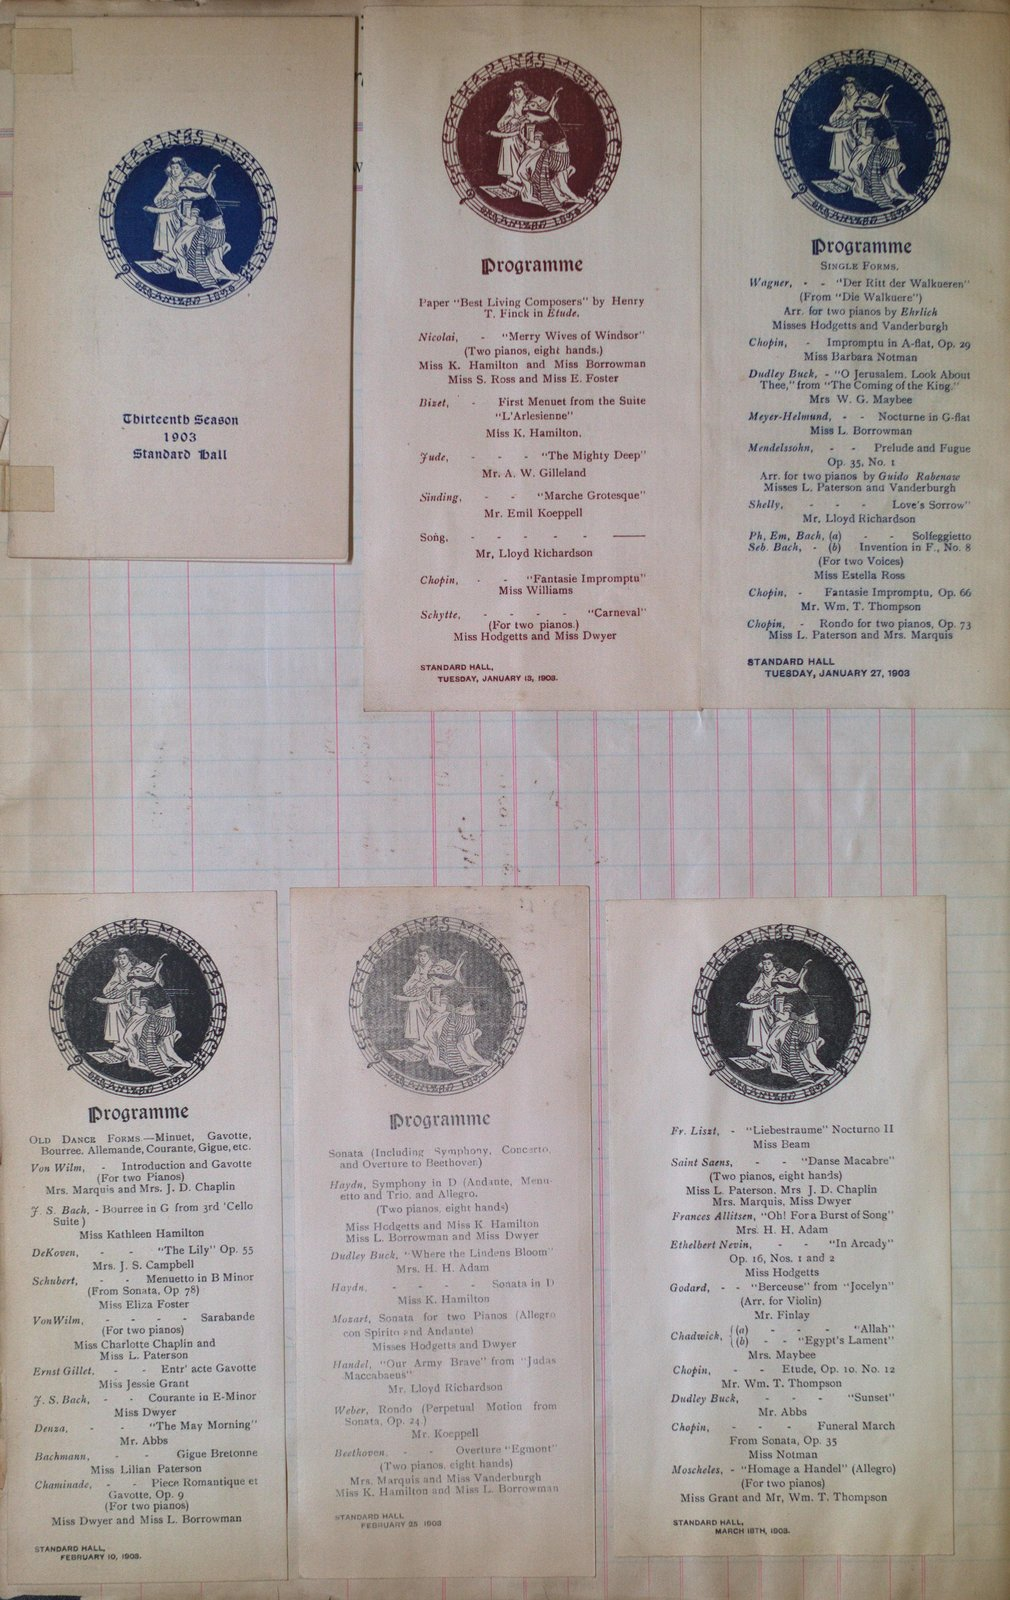 Teresa Vanderburgh's Musical Scrapbook #2 - St. Catharines Musical Circle Programs